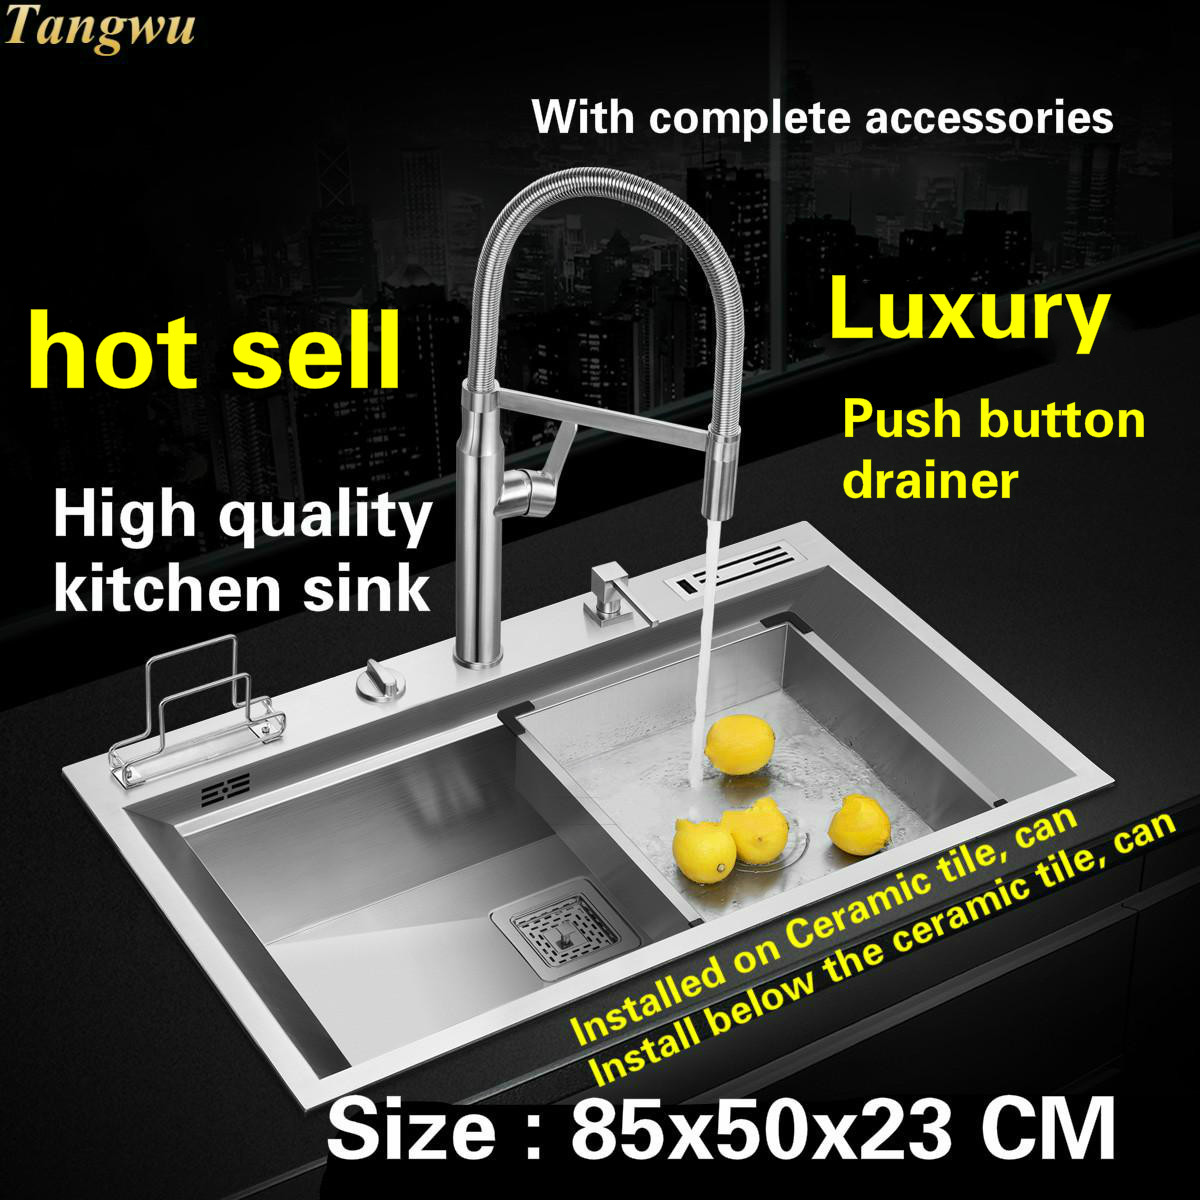 Tangwu High Quality Kitchen Sink 4 Mm  Food Grade 304 Stainless Steel Mesa Control The Drainage Manual Single Slot   85x50x23 CM